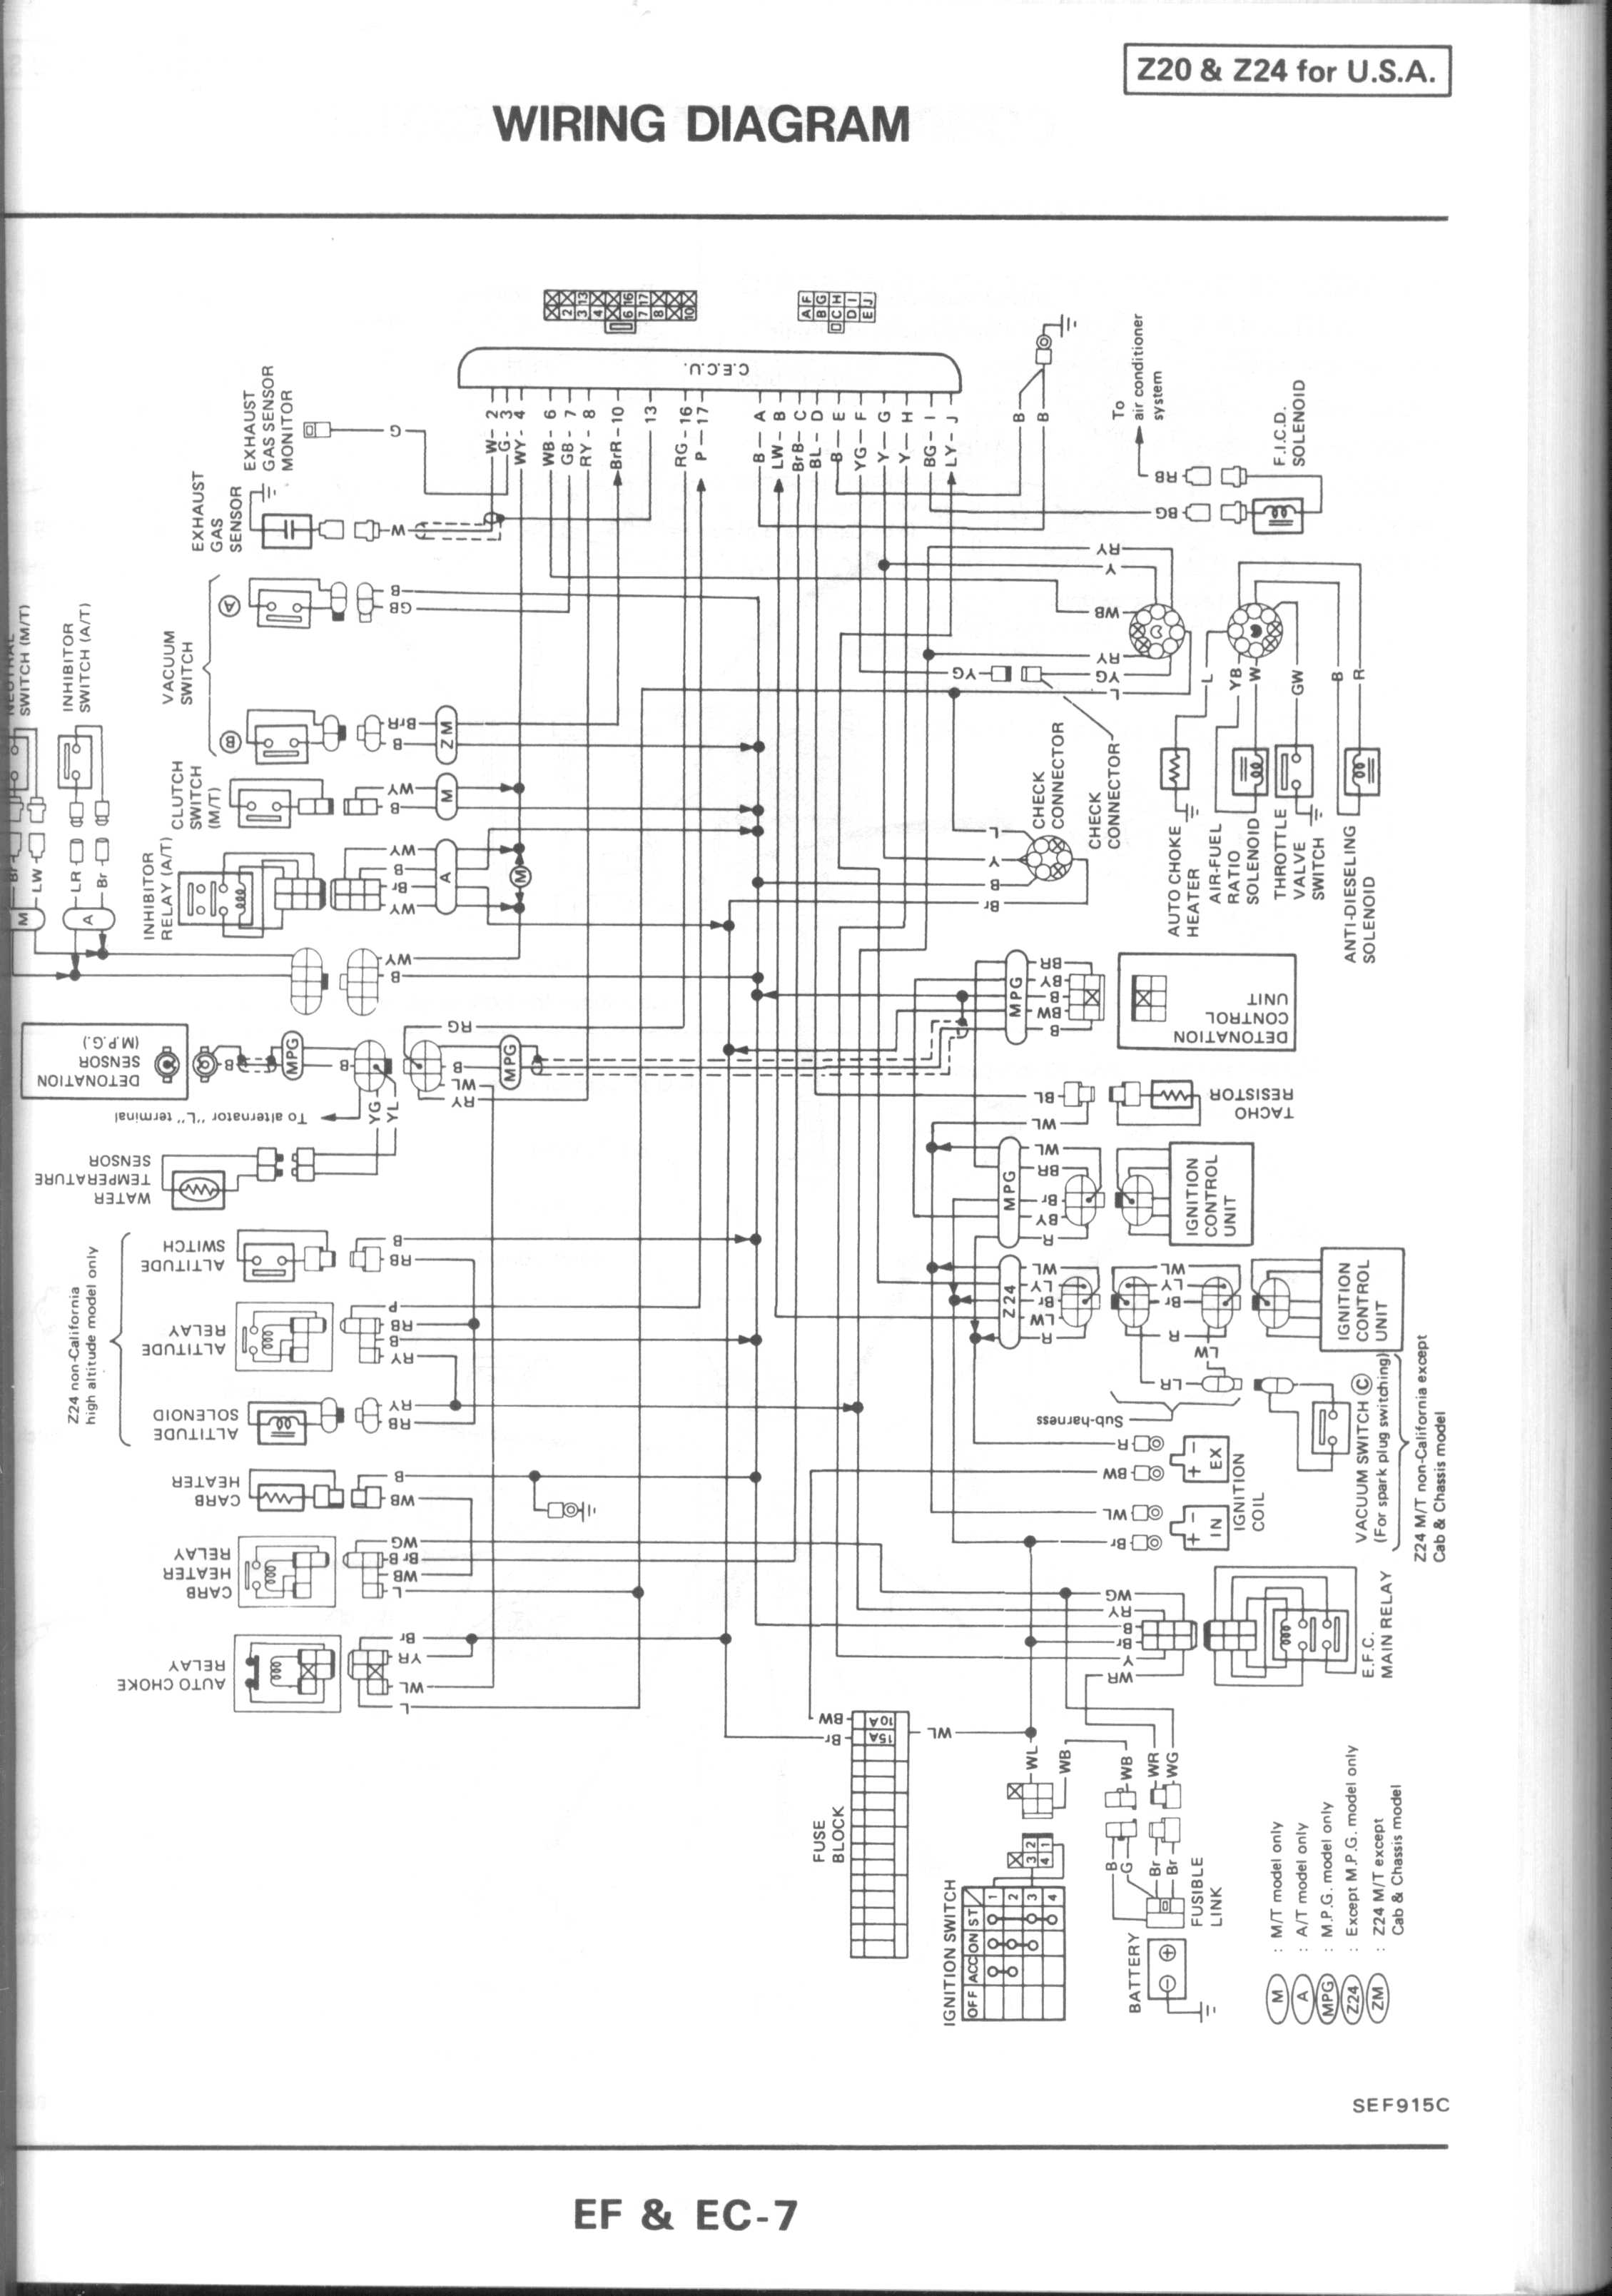 1985 300zx wiring diagram auto electrical wiring diagram rh stanford edu uk  co gov sanjaydutt me 1988 nissan 300zx fuse box